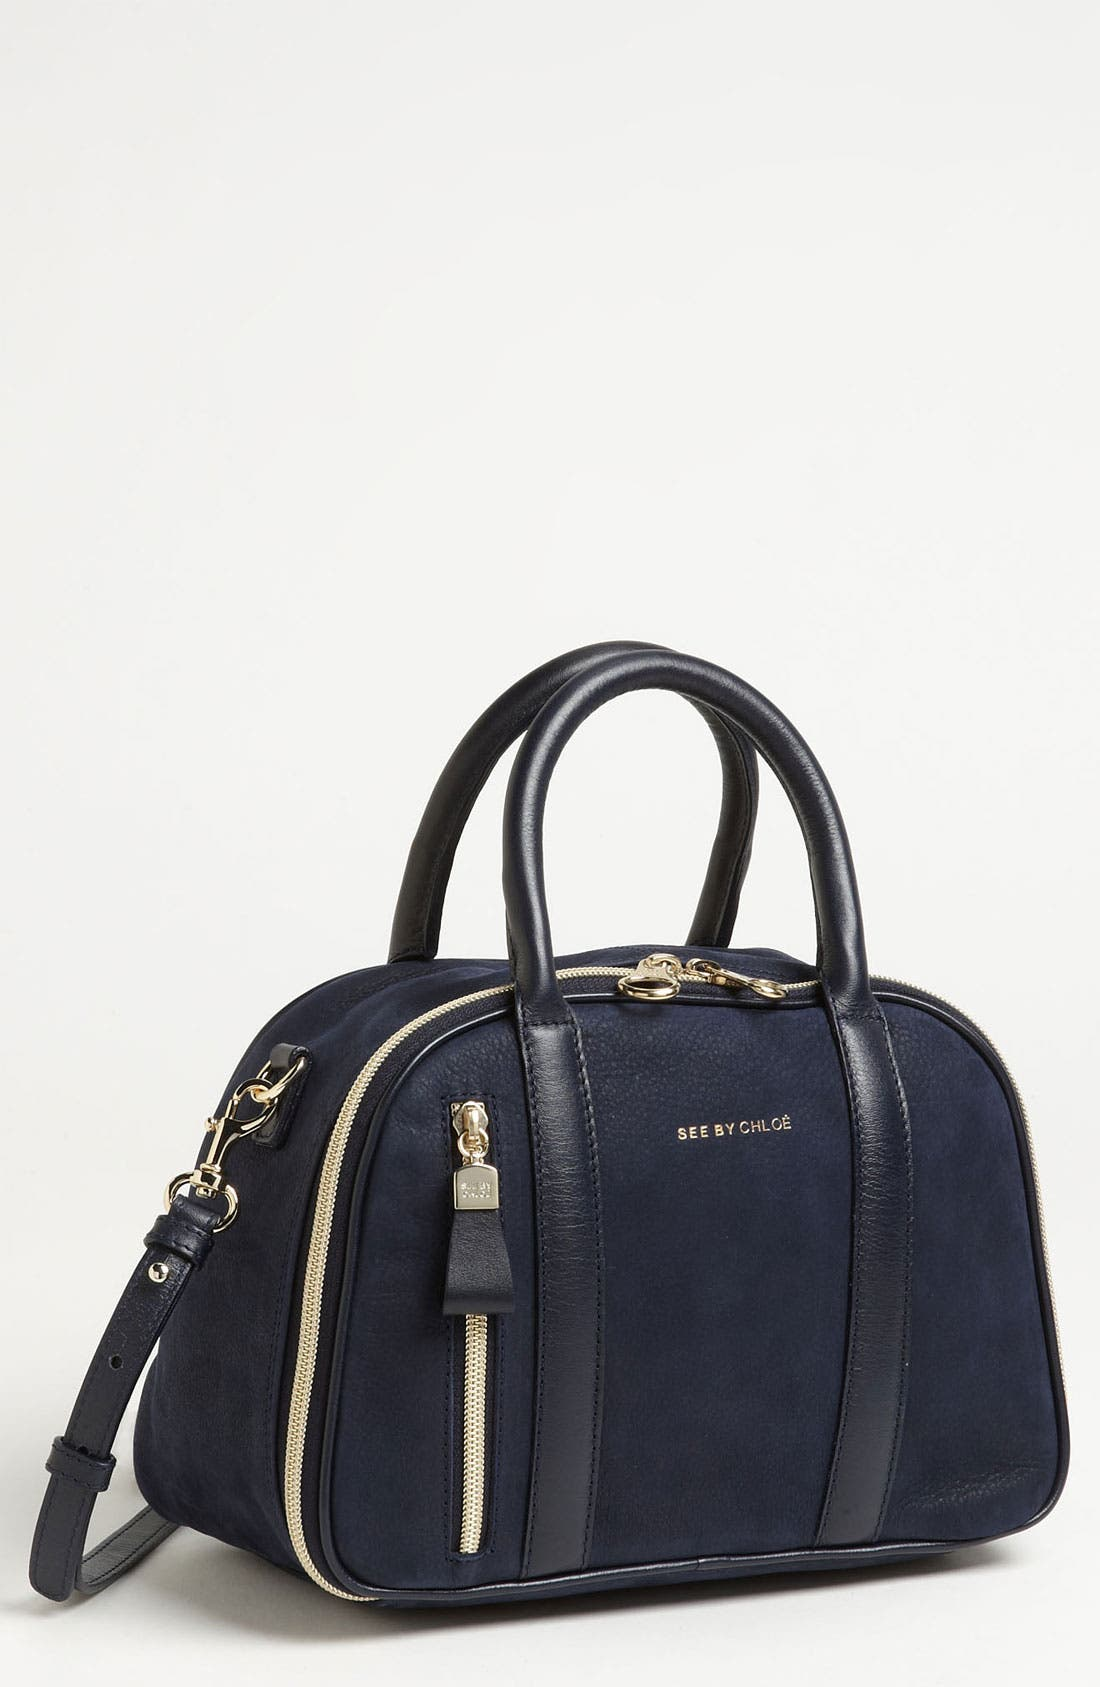 Alternate Image 1 Selected - See by Chloé 'Harriet - Small' Double Function Satchel